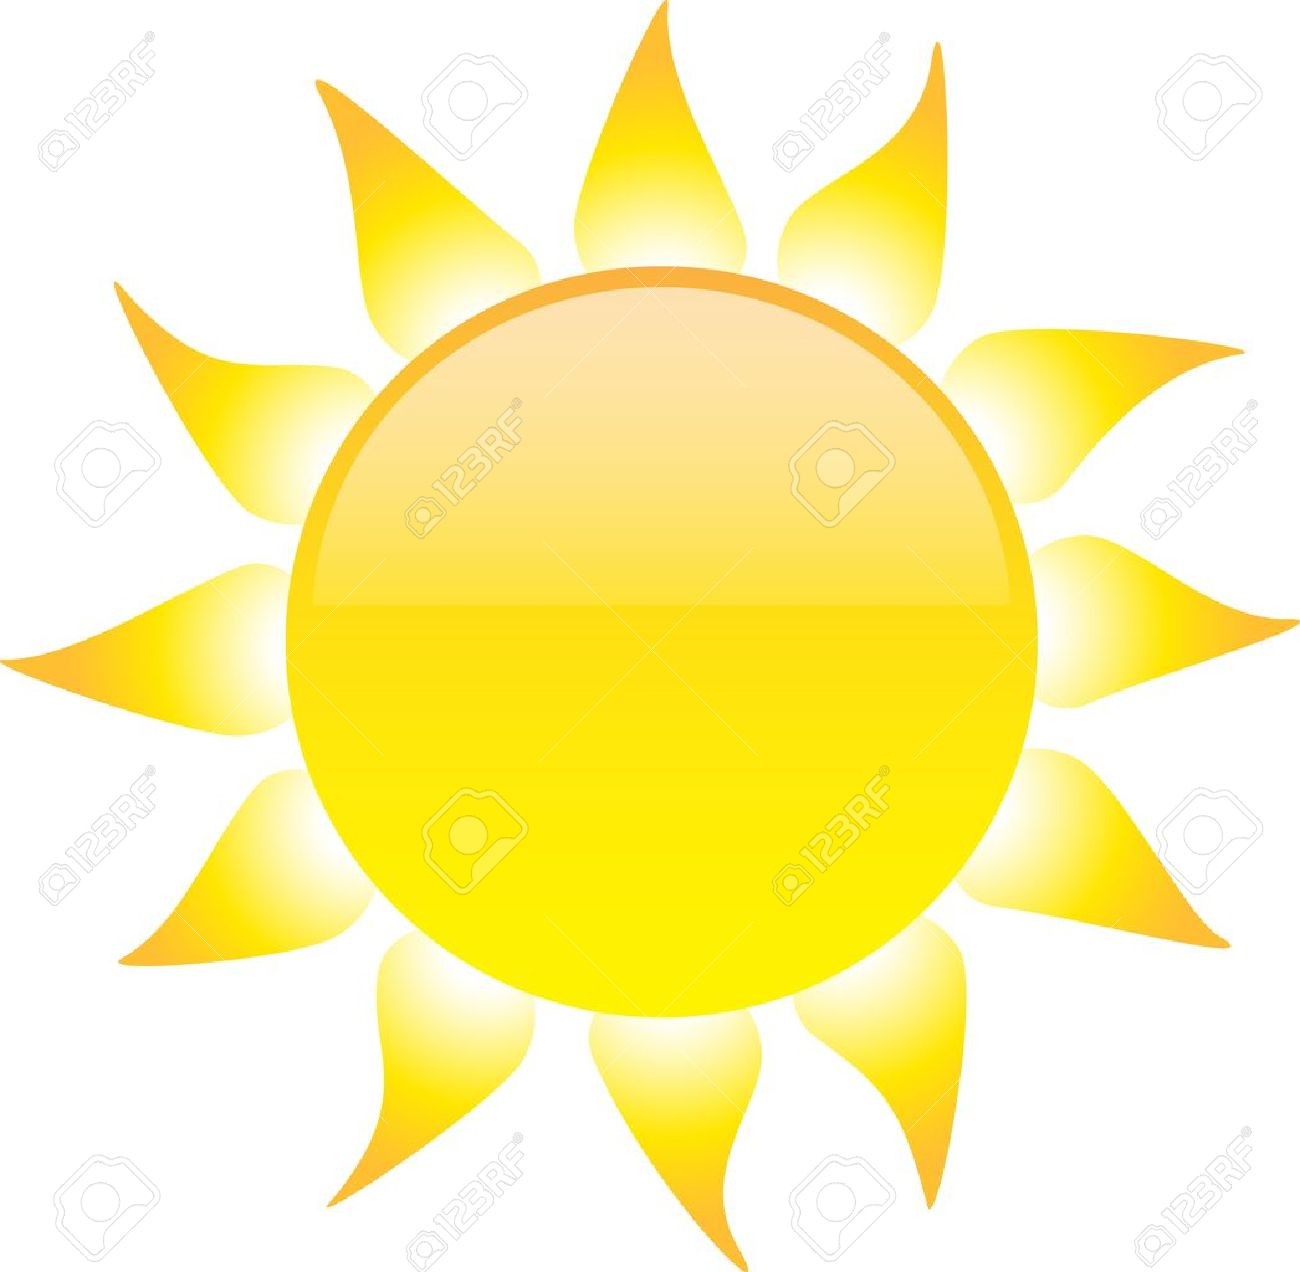 hight resolution of sun clipart white background pencil and in color sun jpg